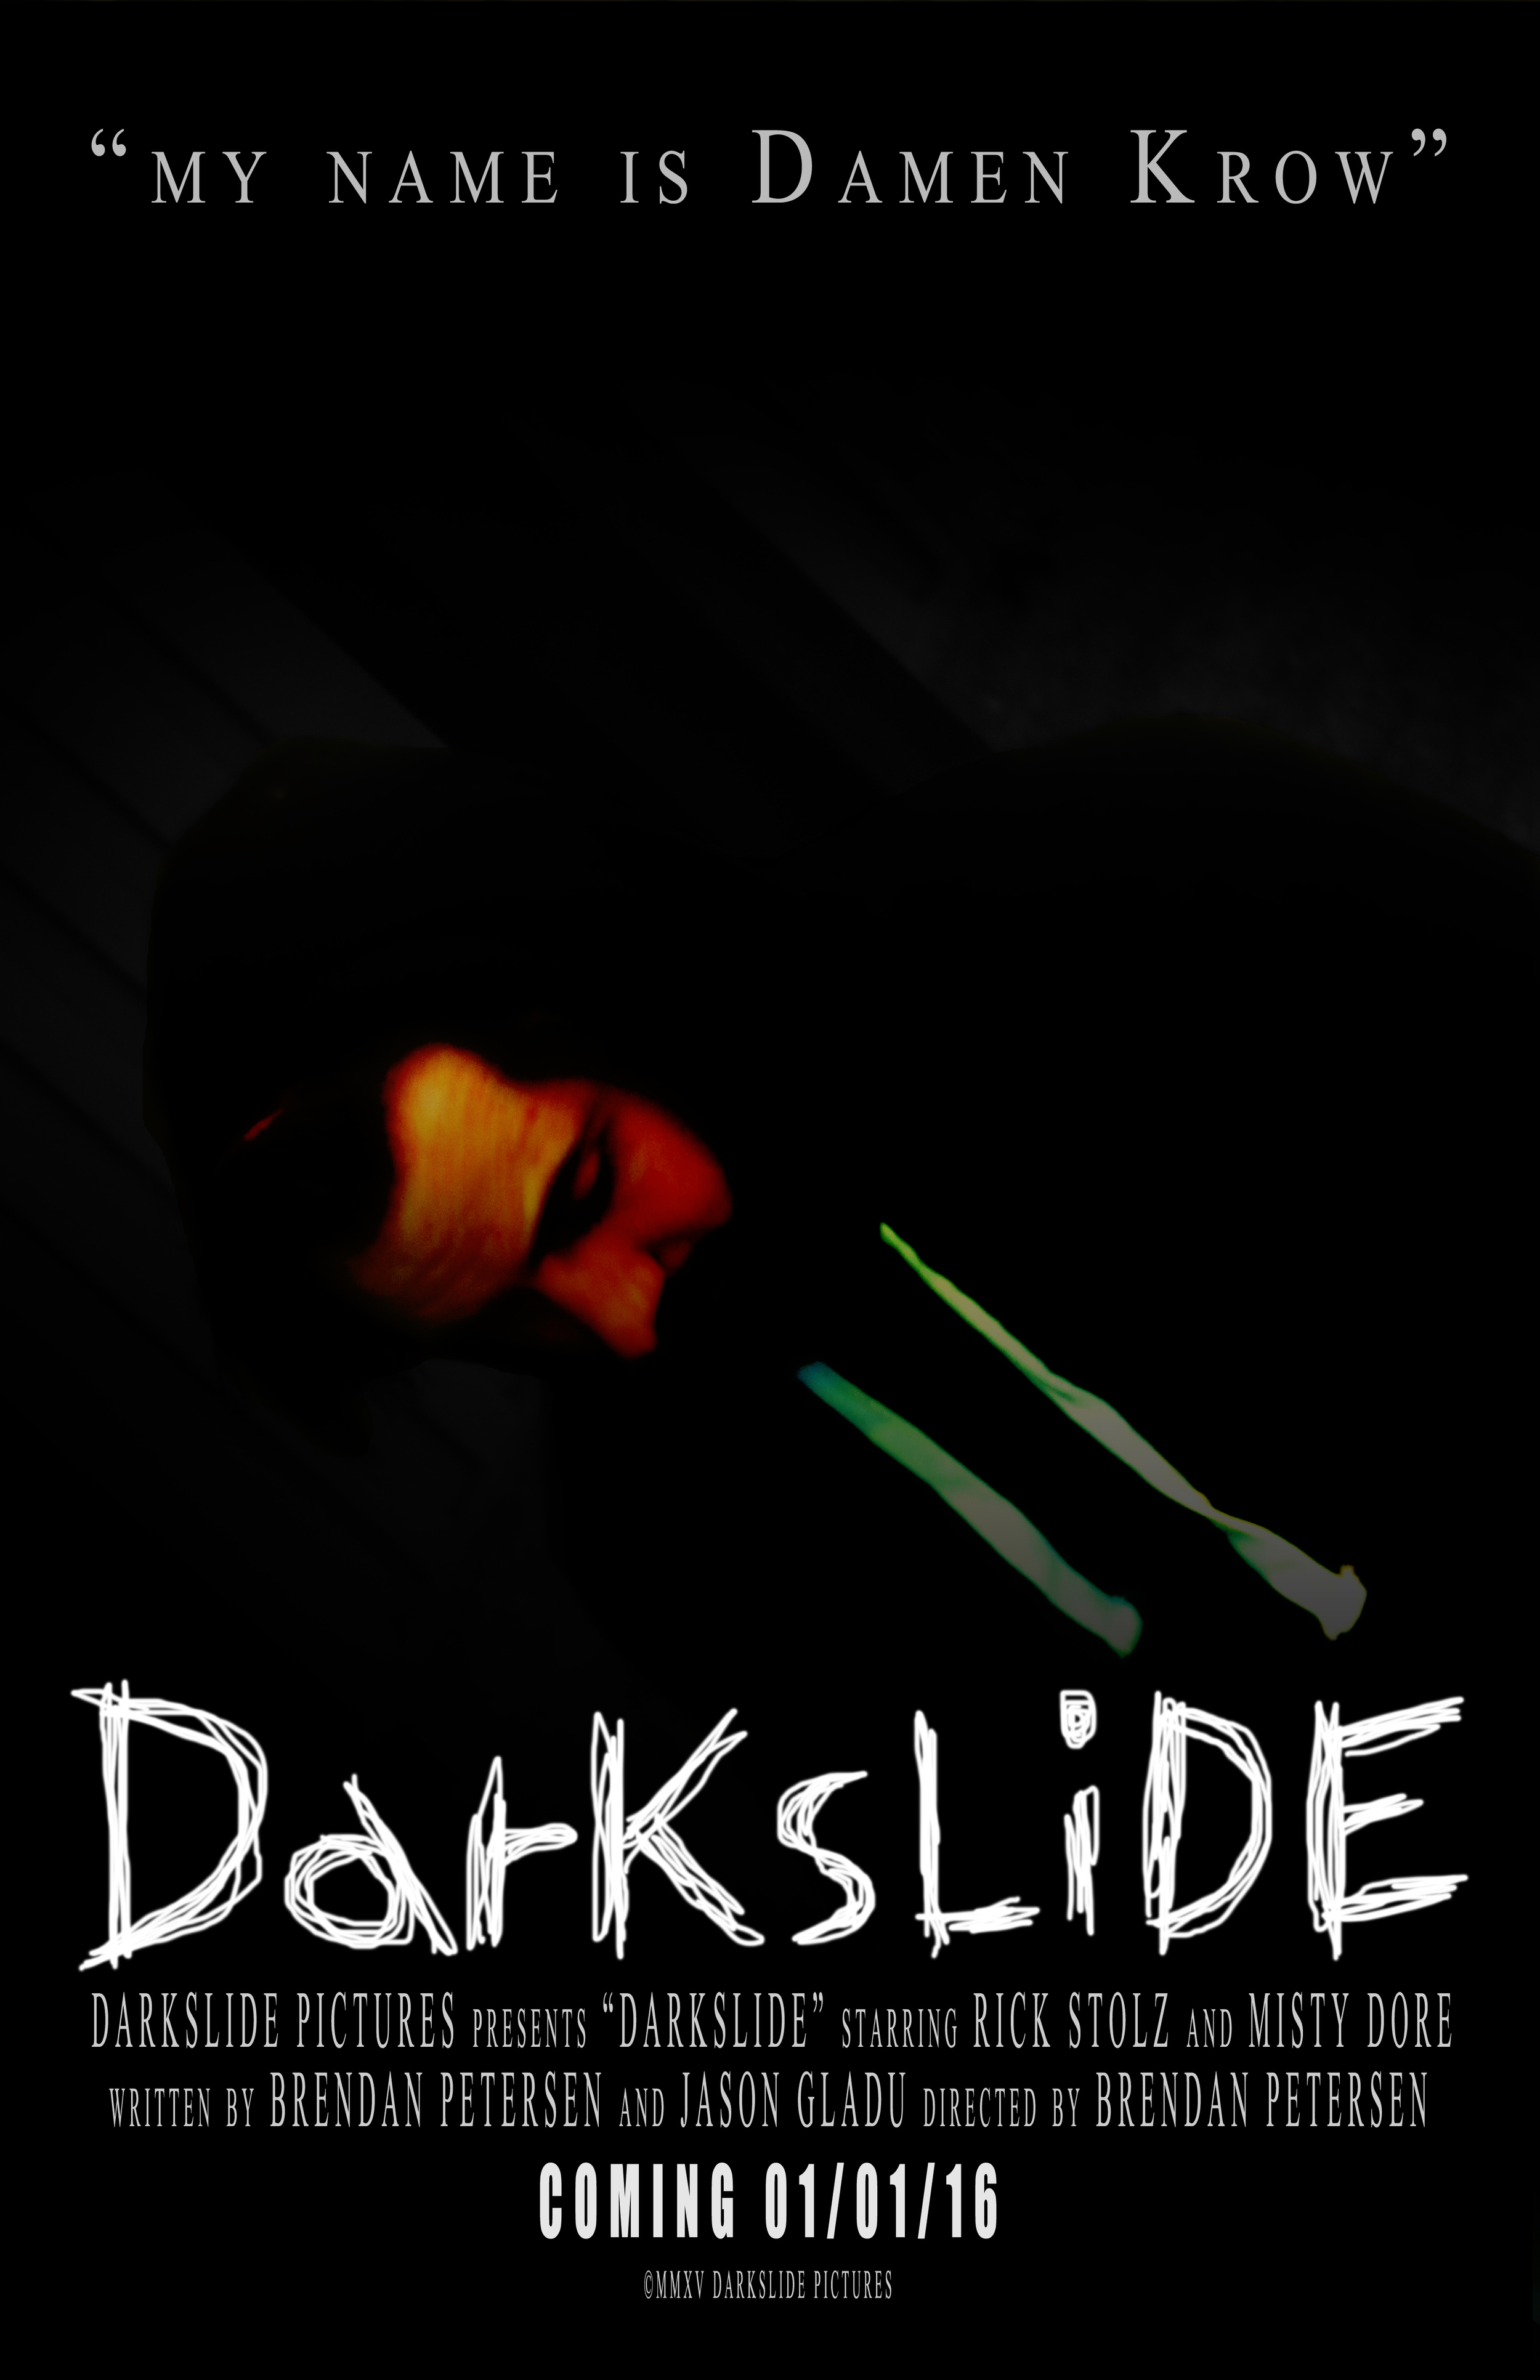 DARKSLIDE - Coming 01/01/16 Official Poster